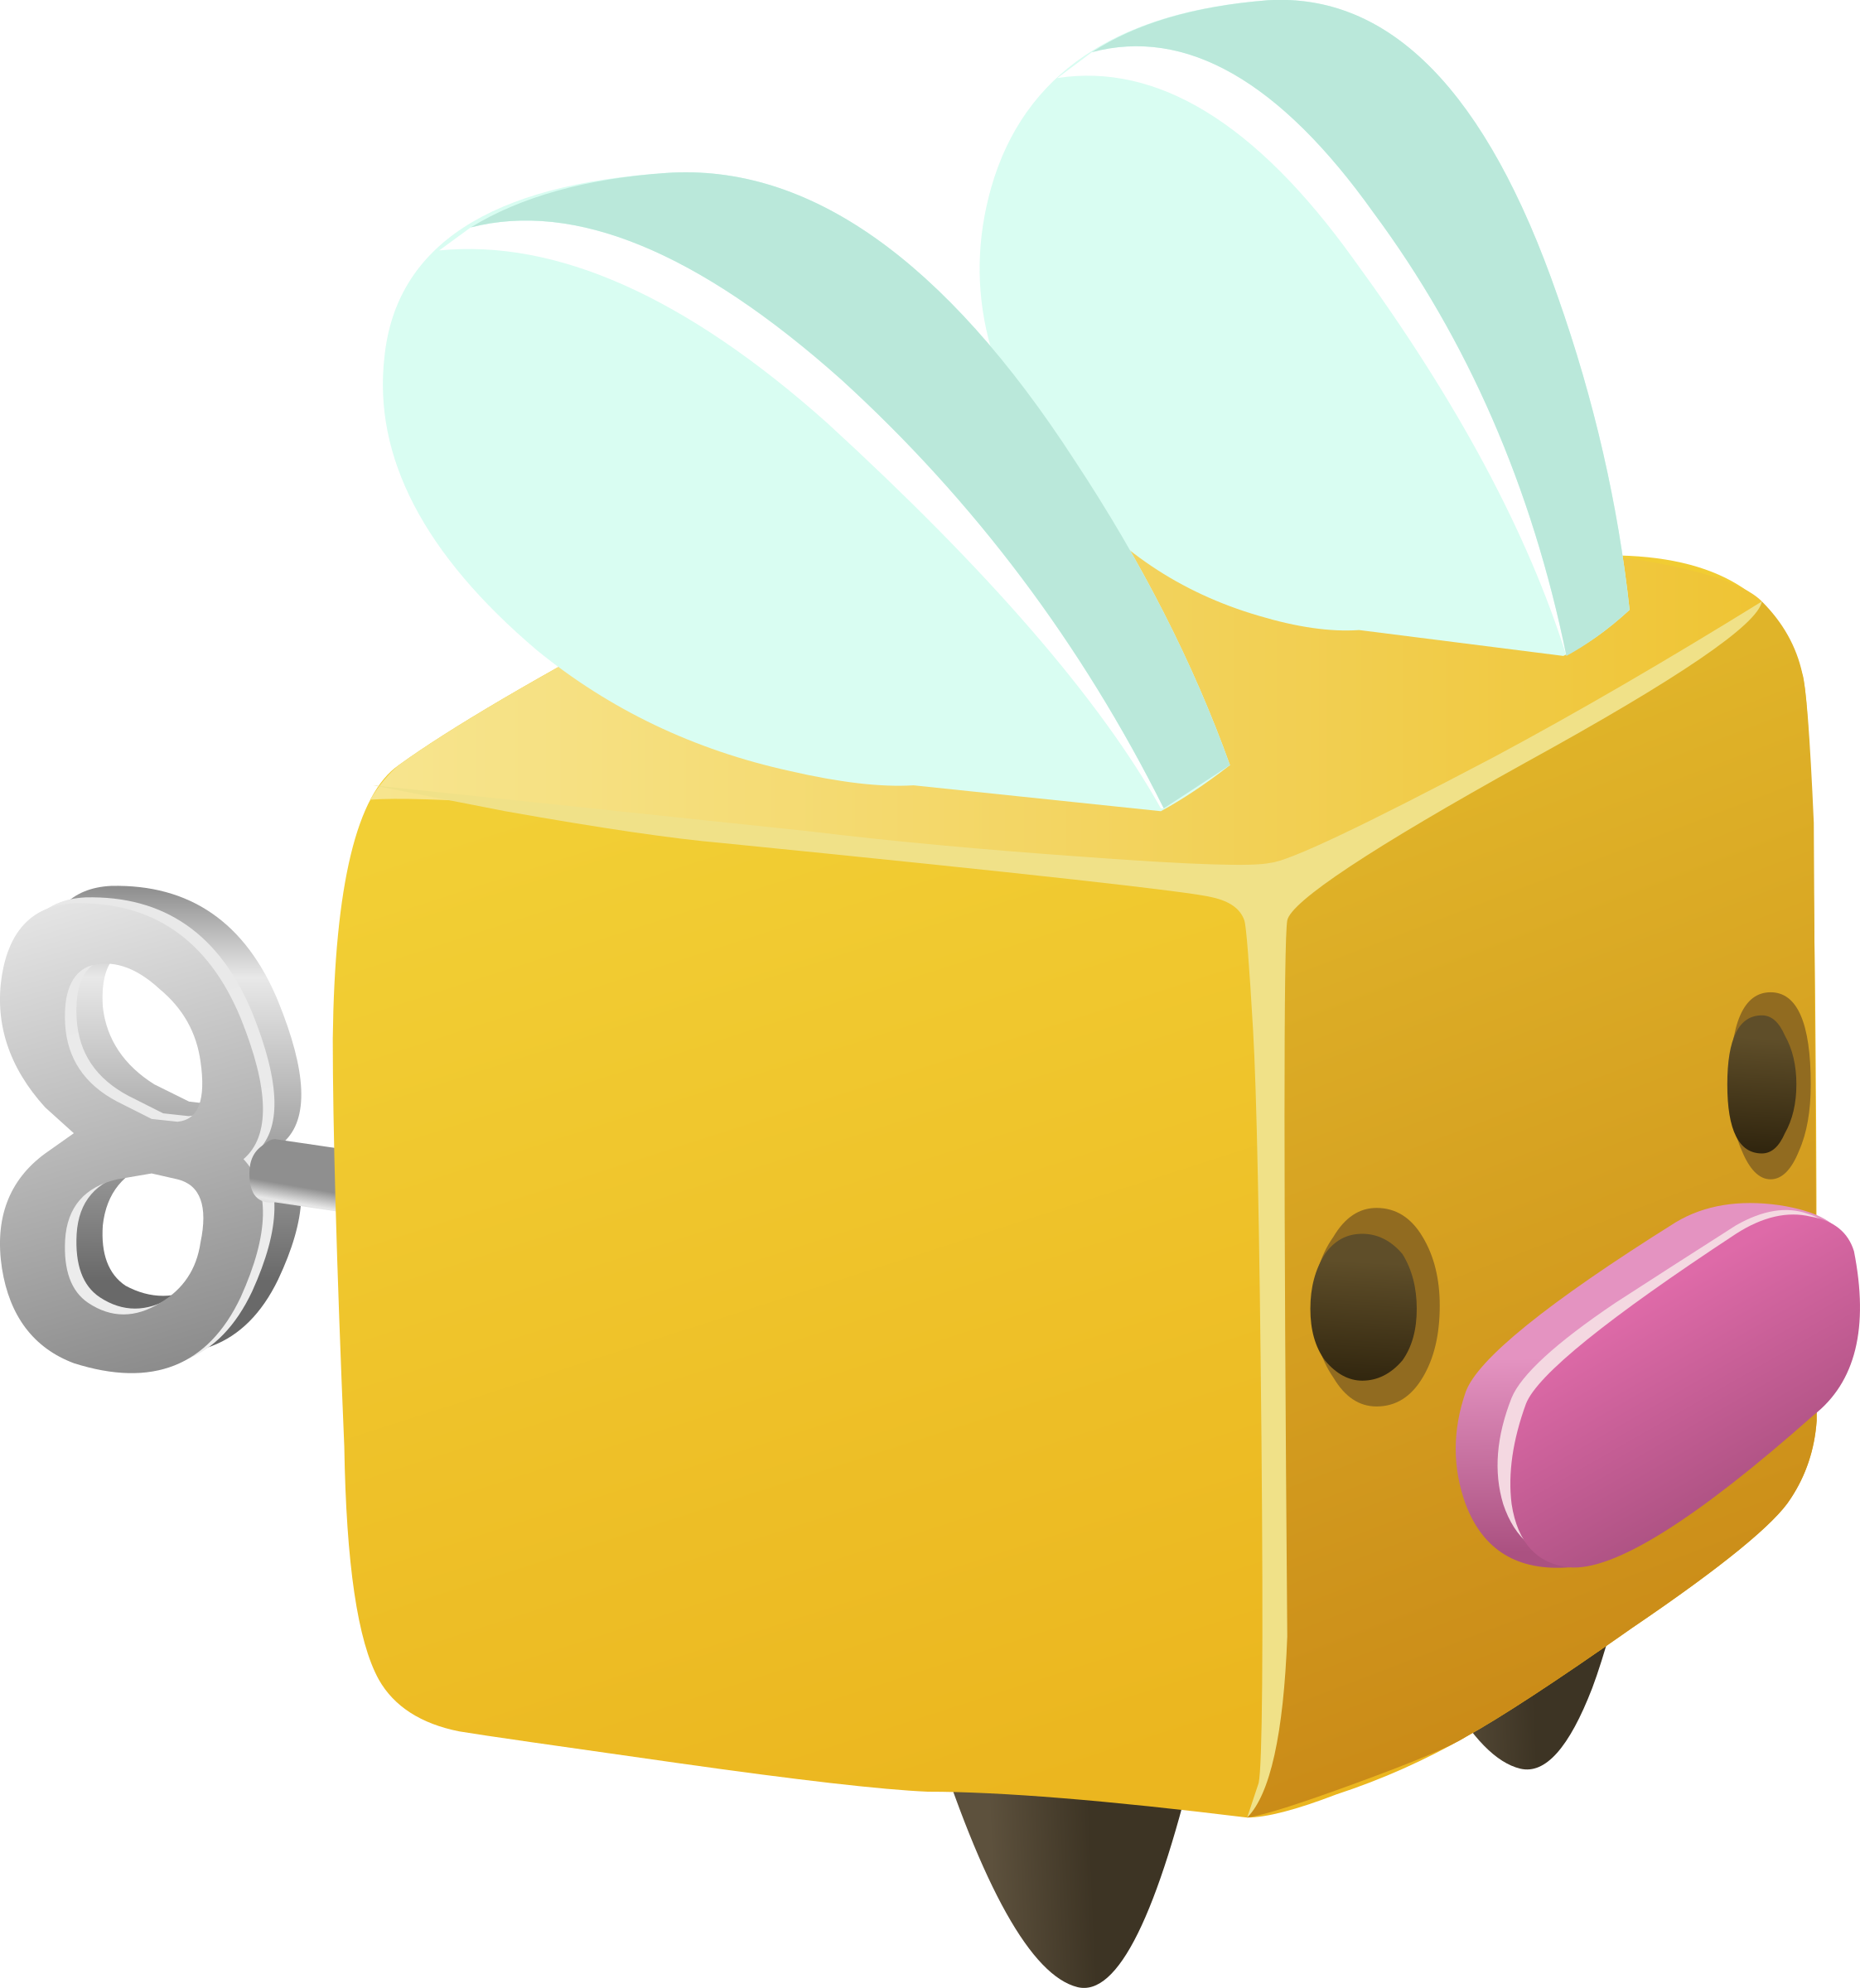 Firefly clipart vector. Cubimal npc icons png